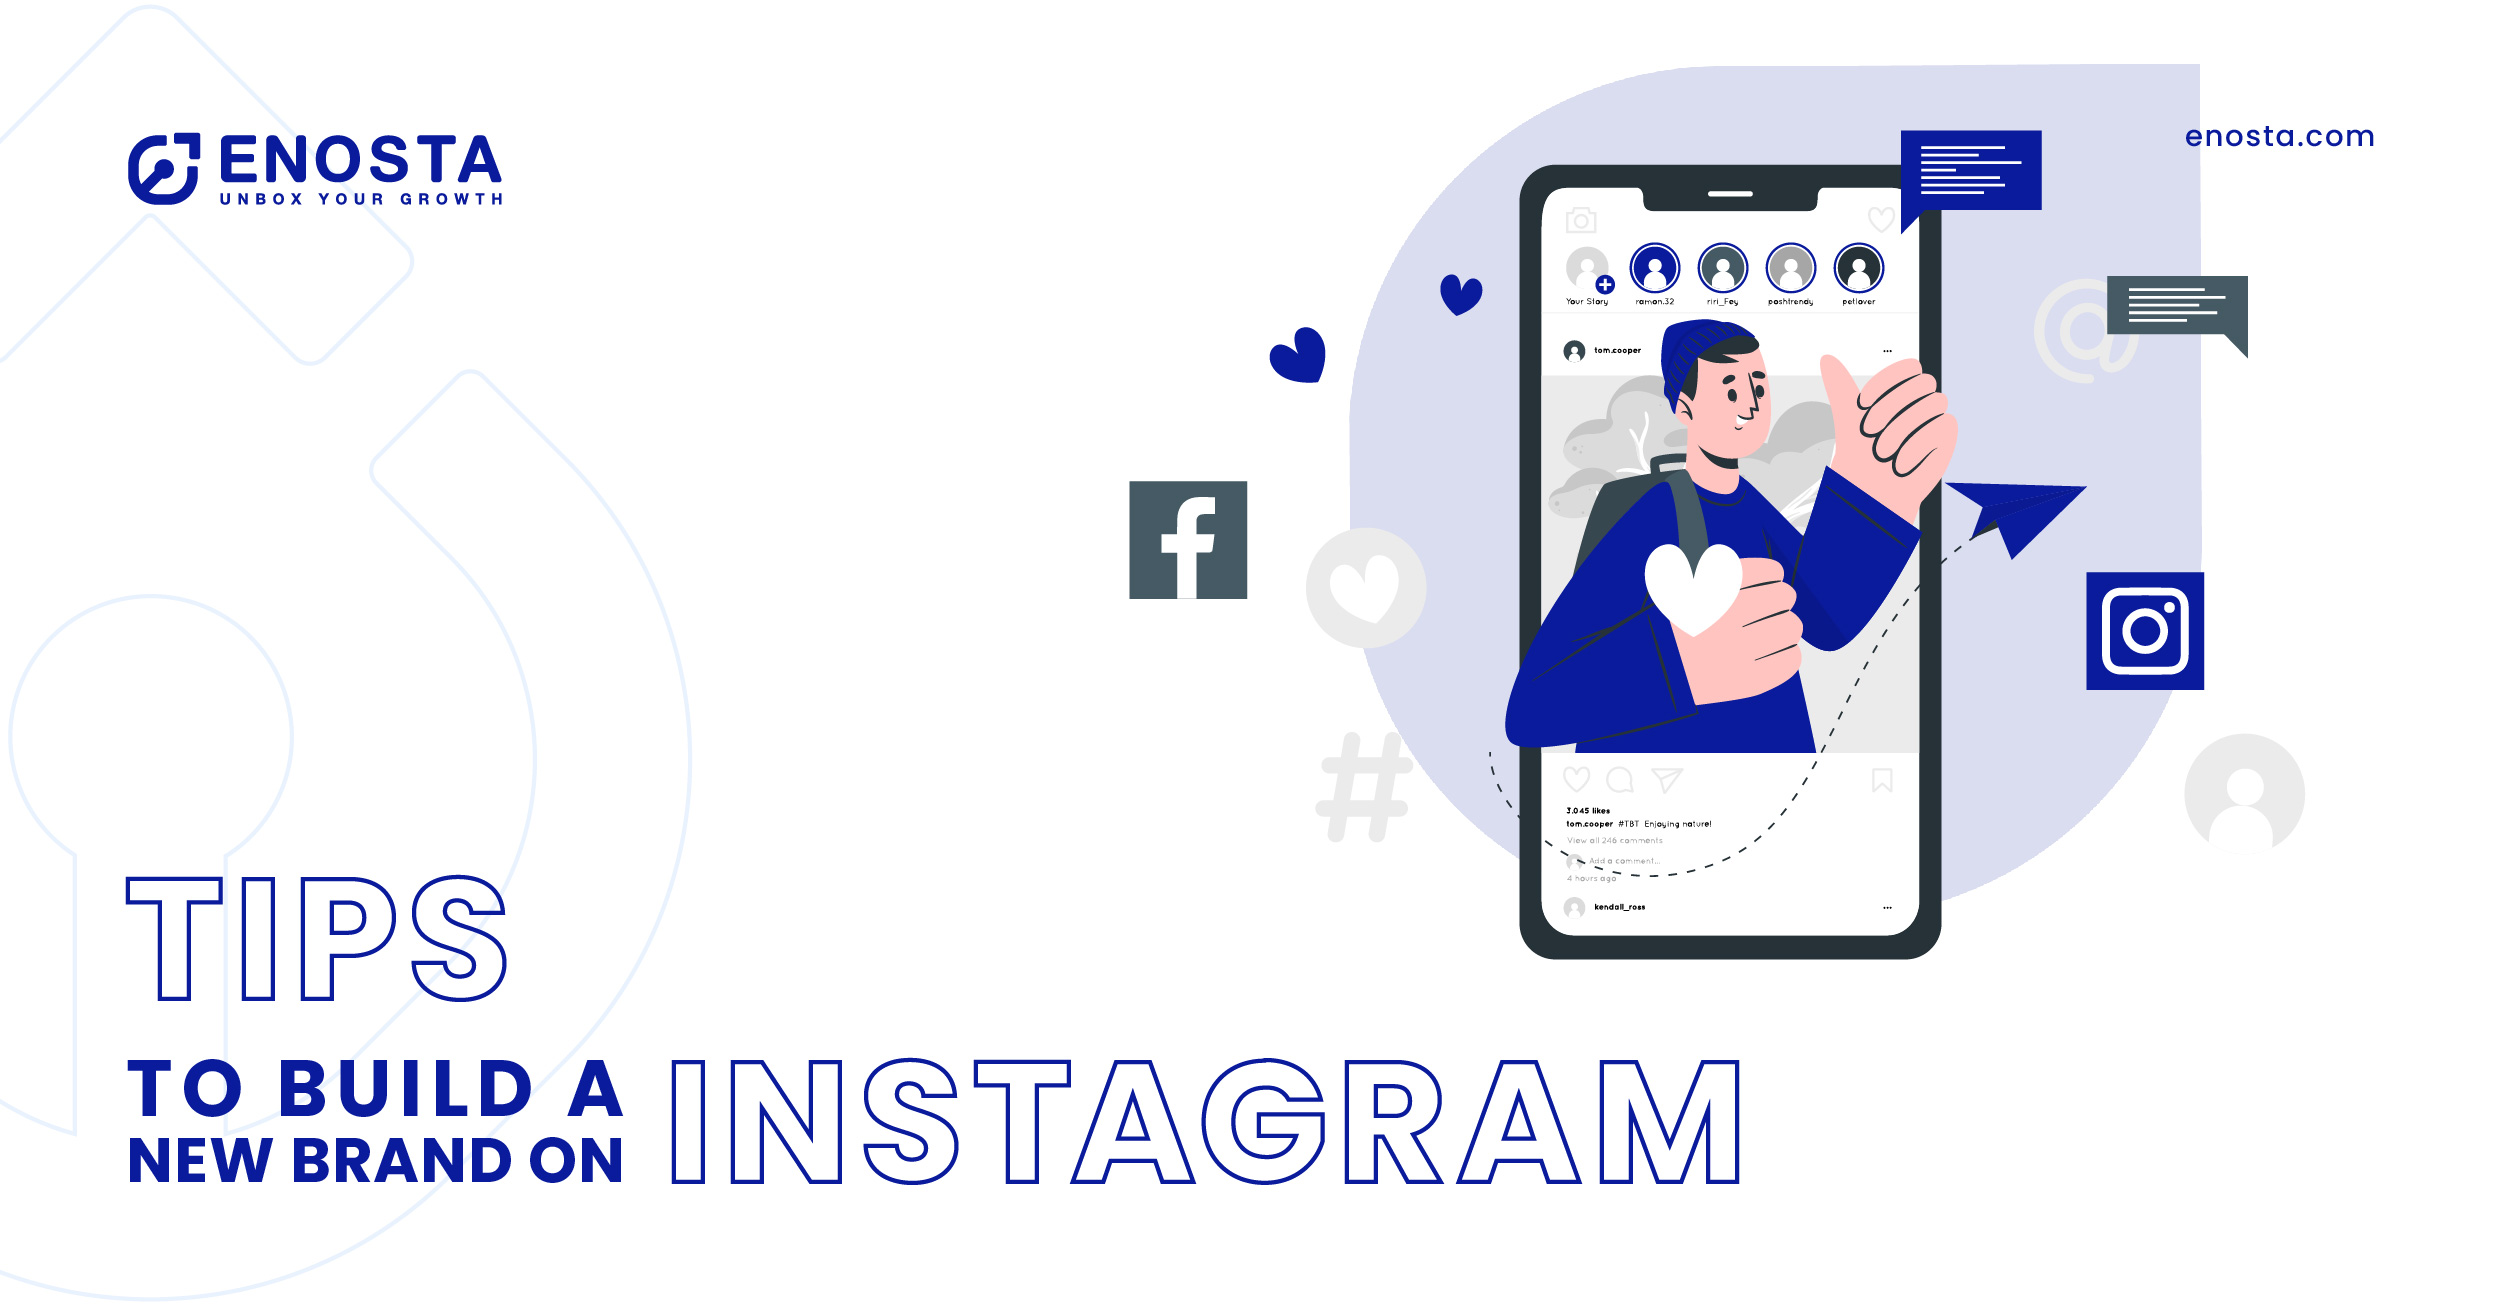 build a new brand on instagram